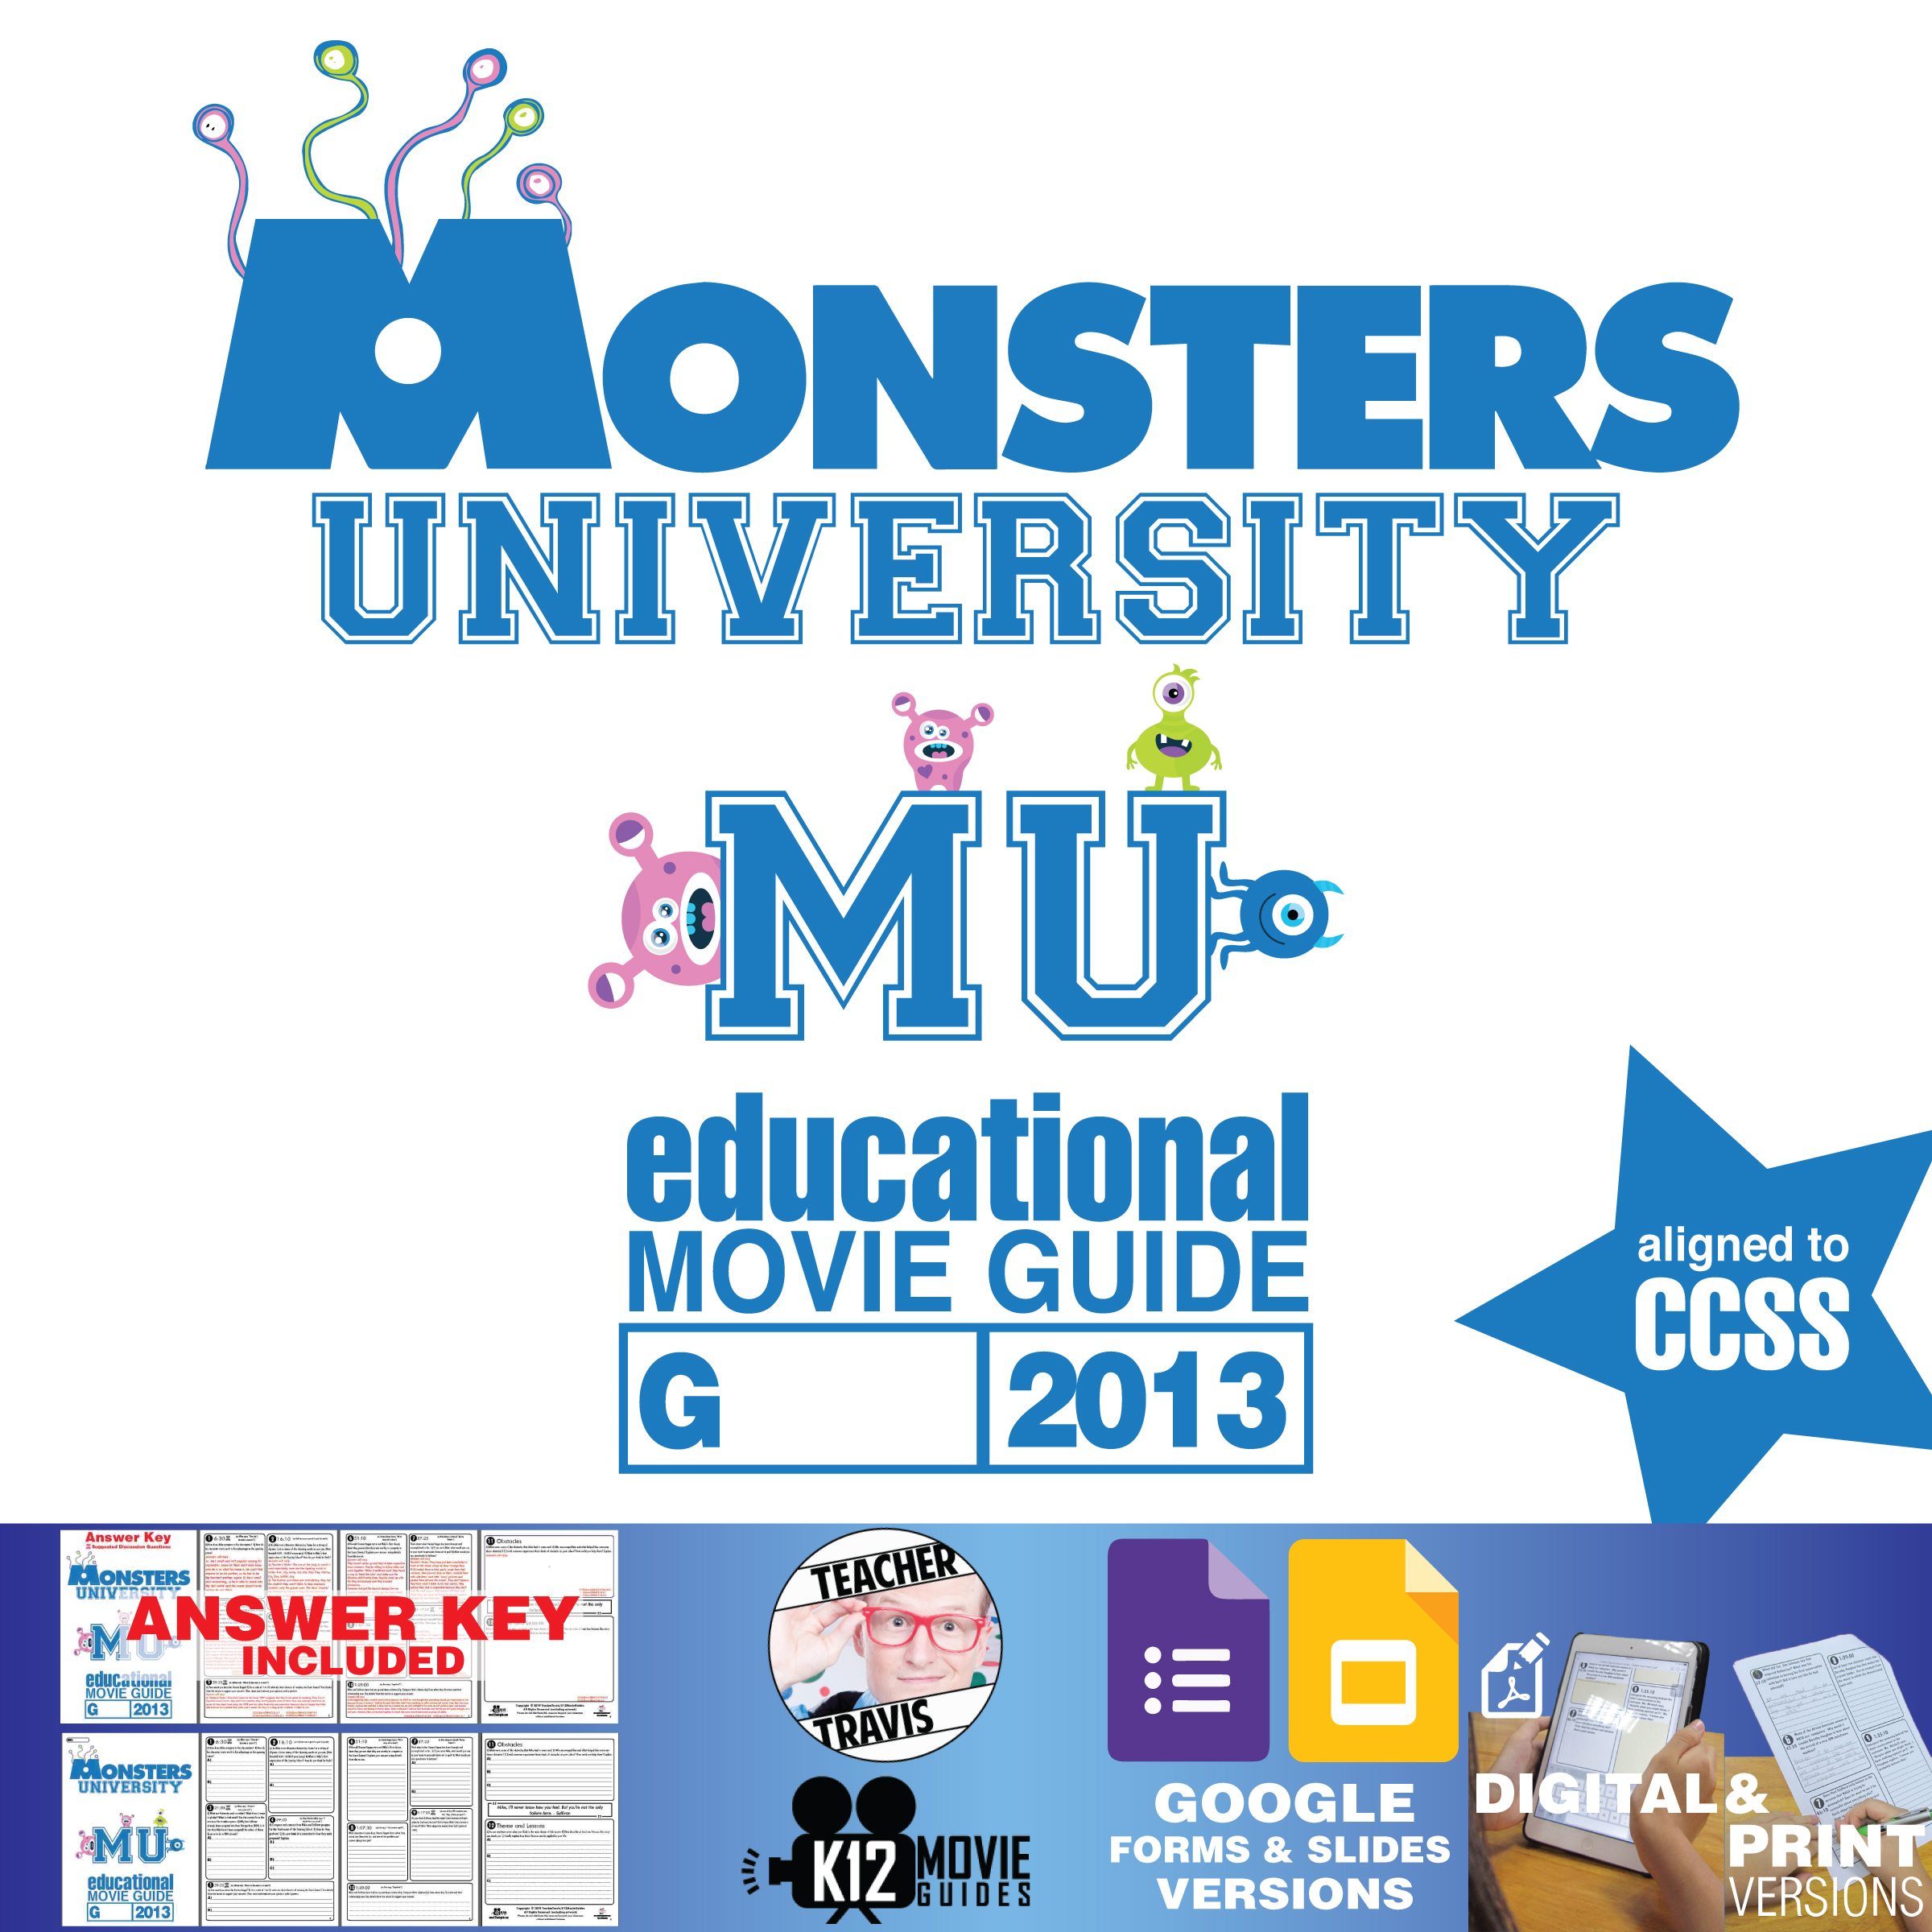 Monsters University Movie Guide | Questions | Worksheet (G - 2013) Cover